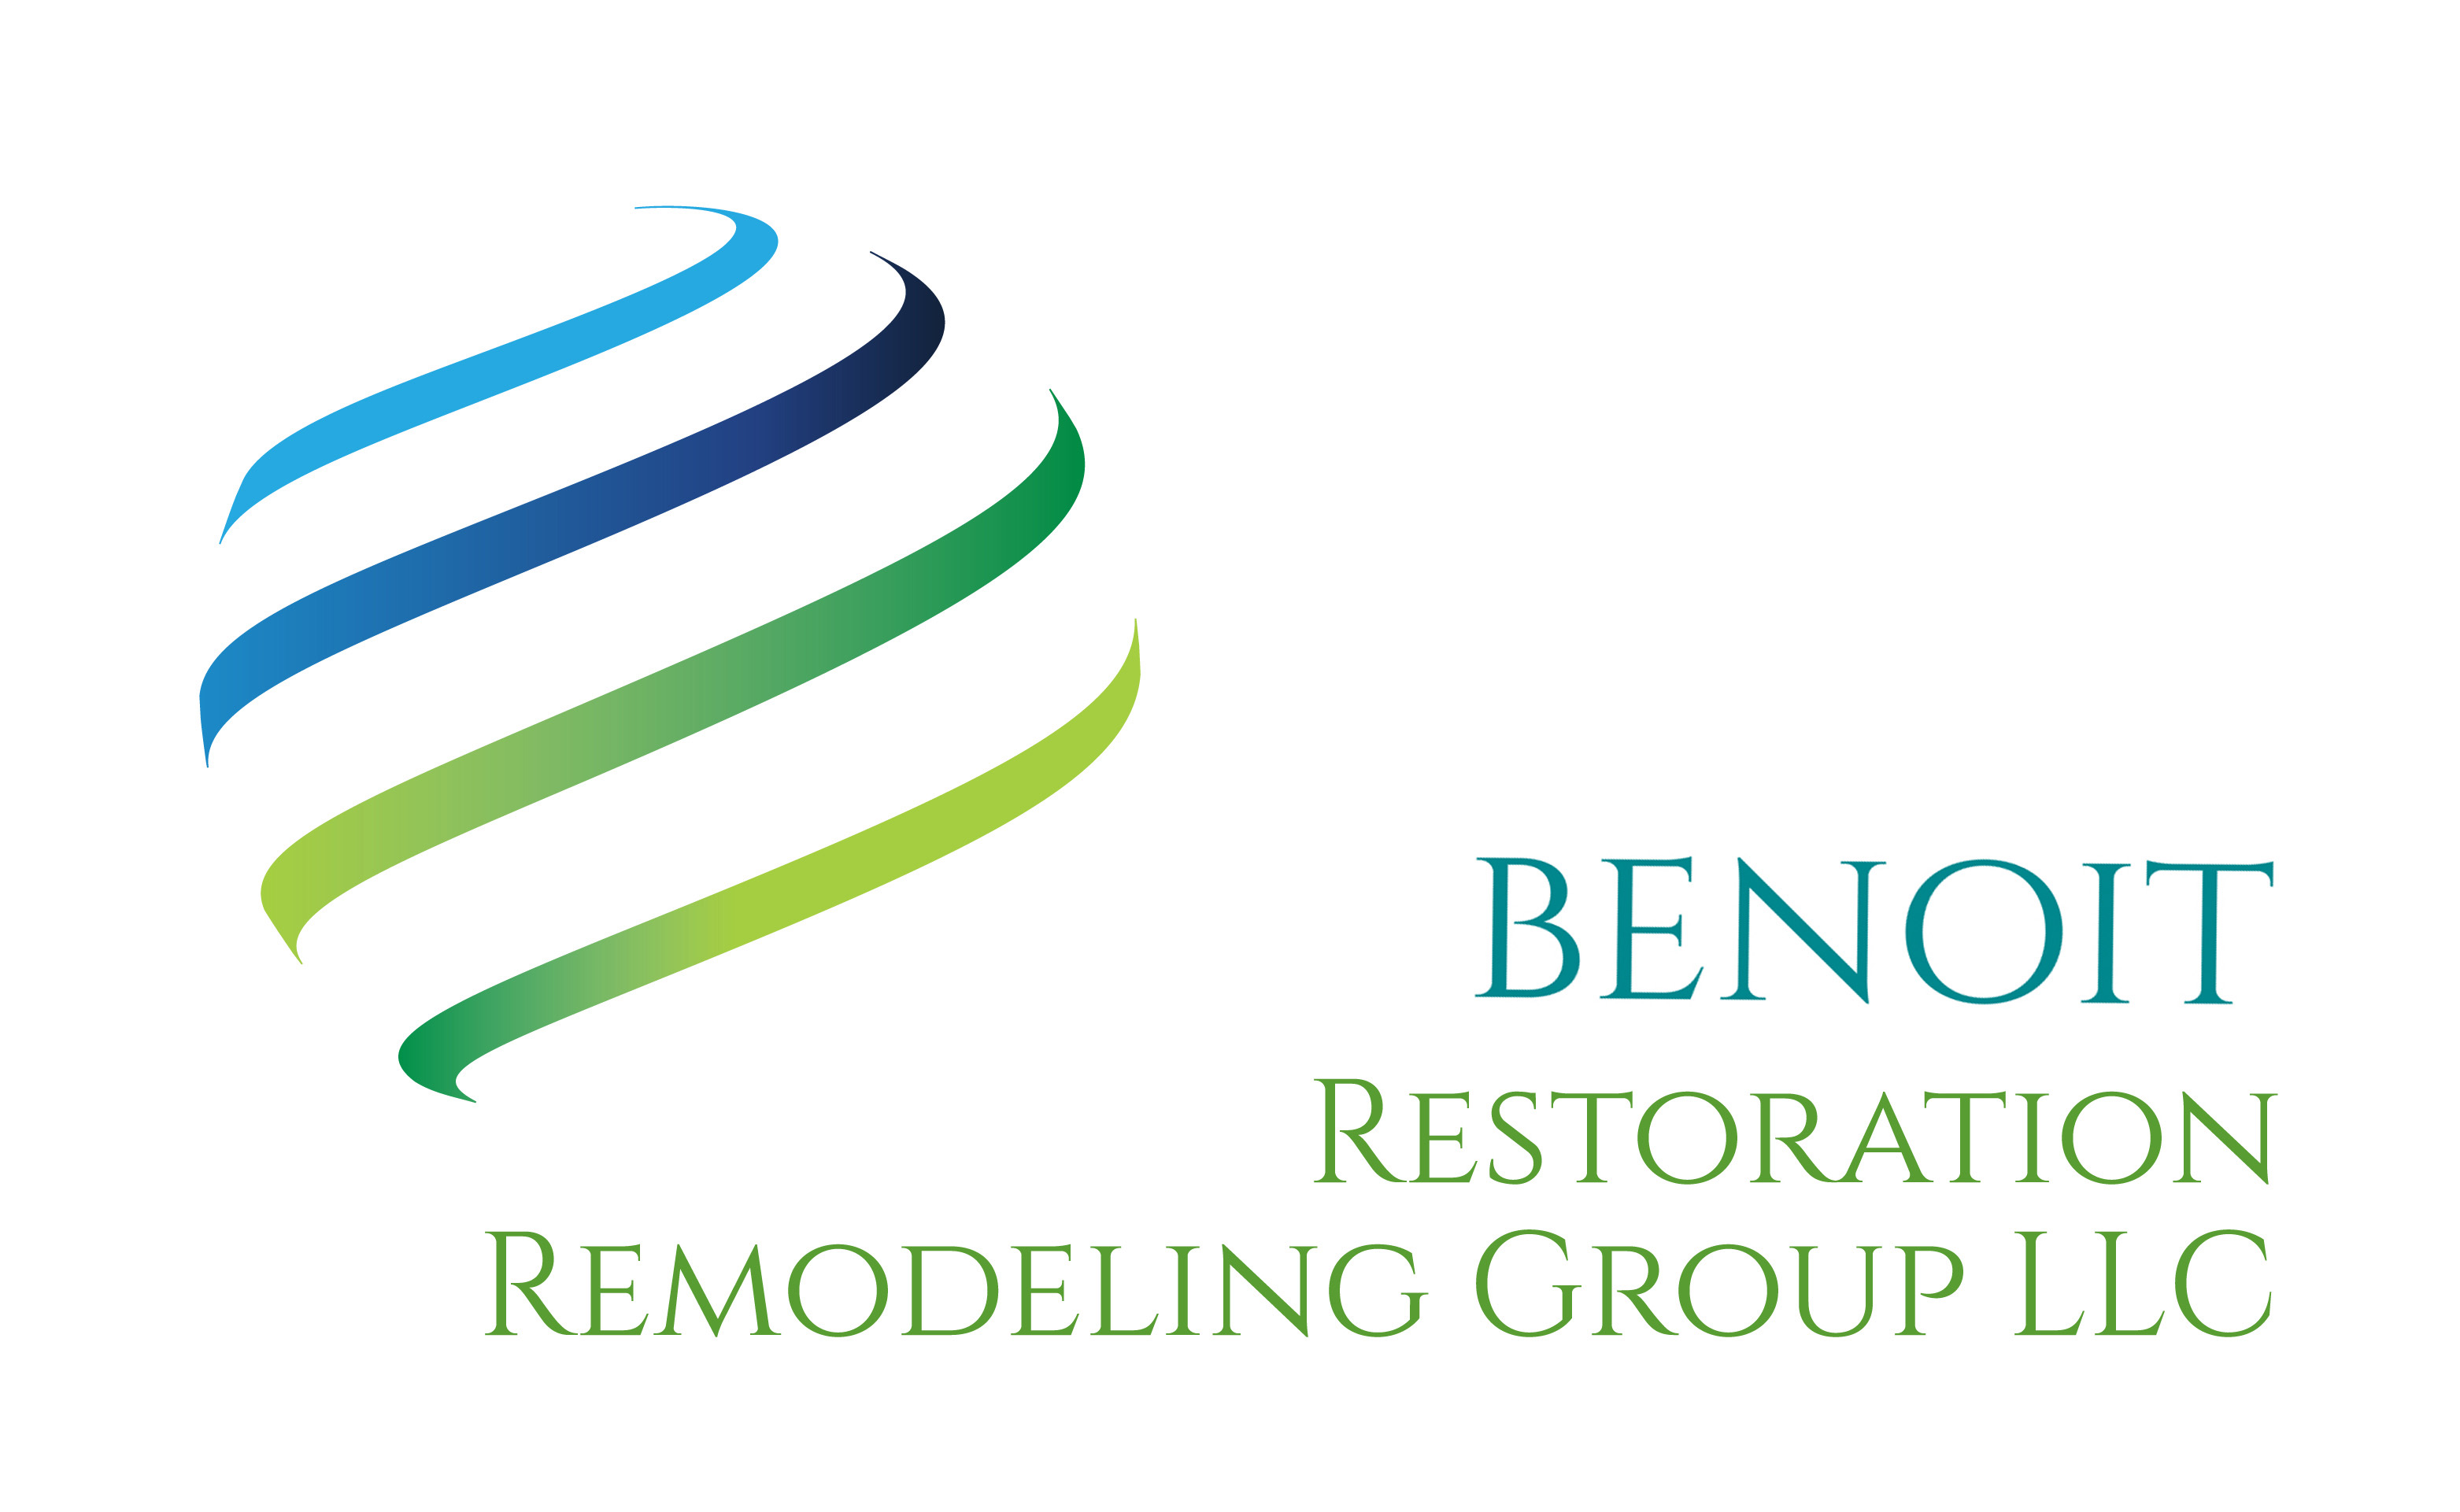 benoitllc.com Photo